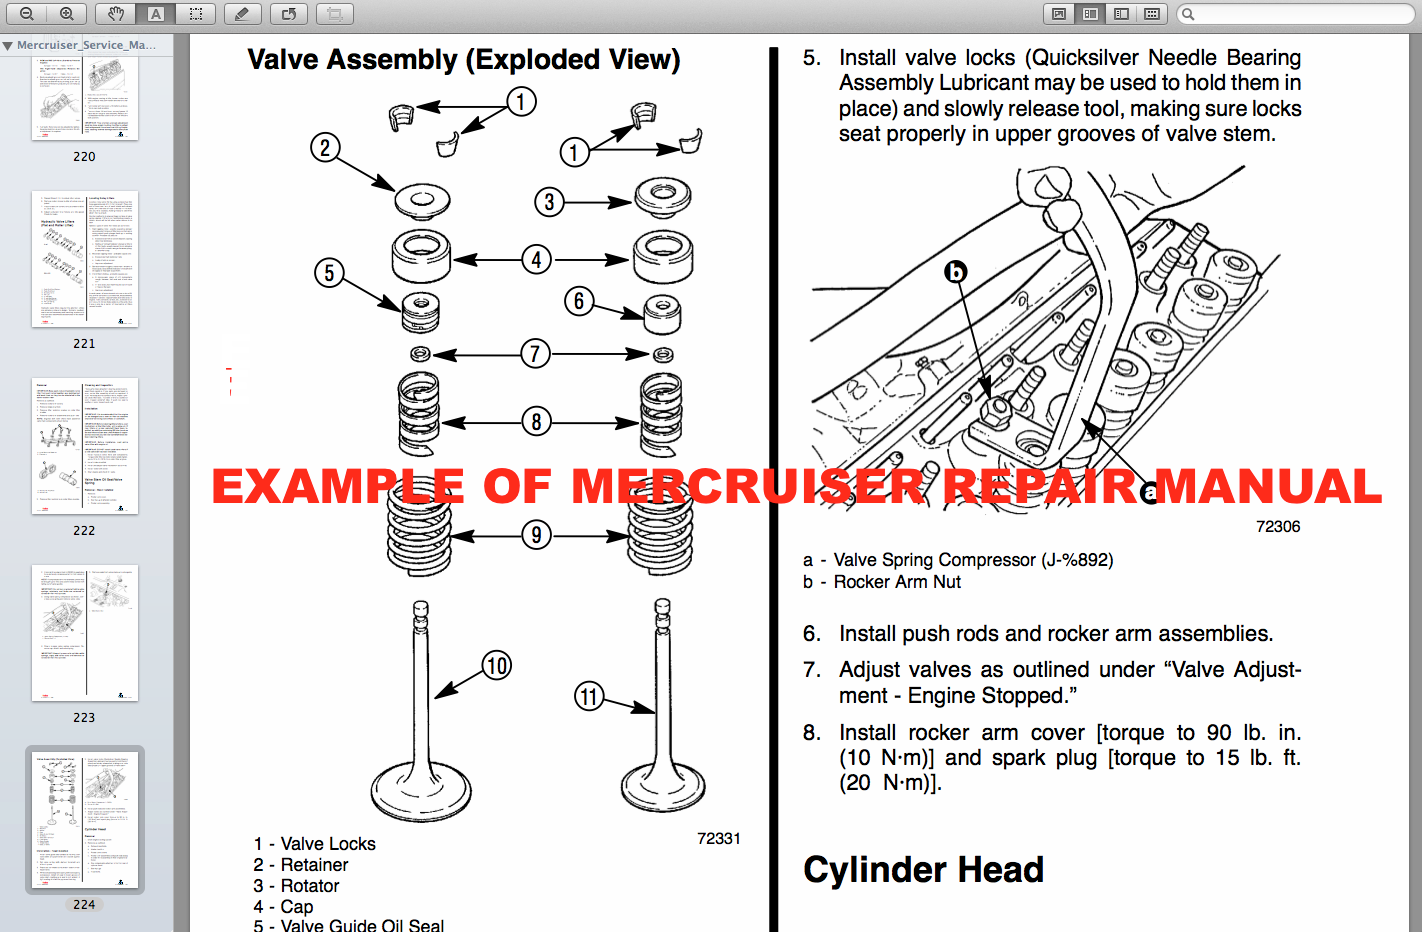 DOWNLOAD MerCruiser Repair Manuals: DOWNLOAD MerCruiser